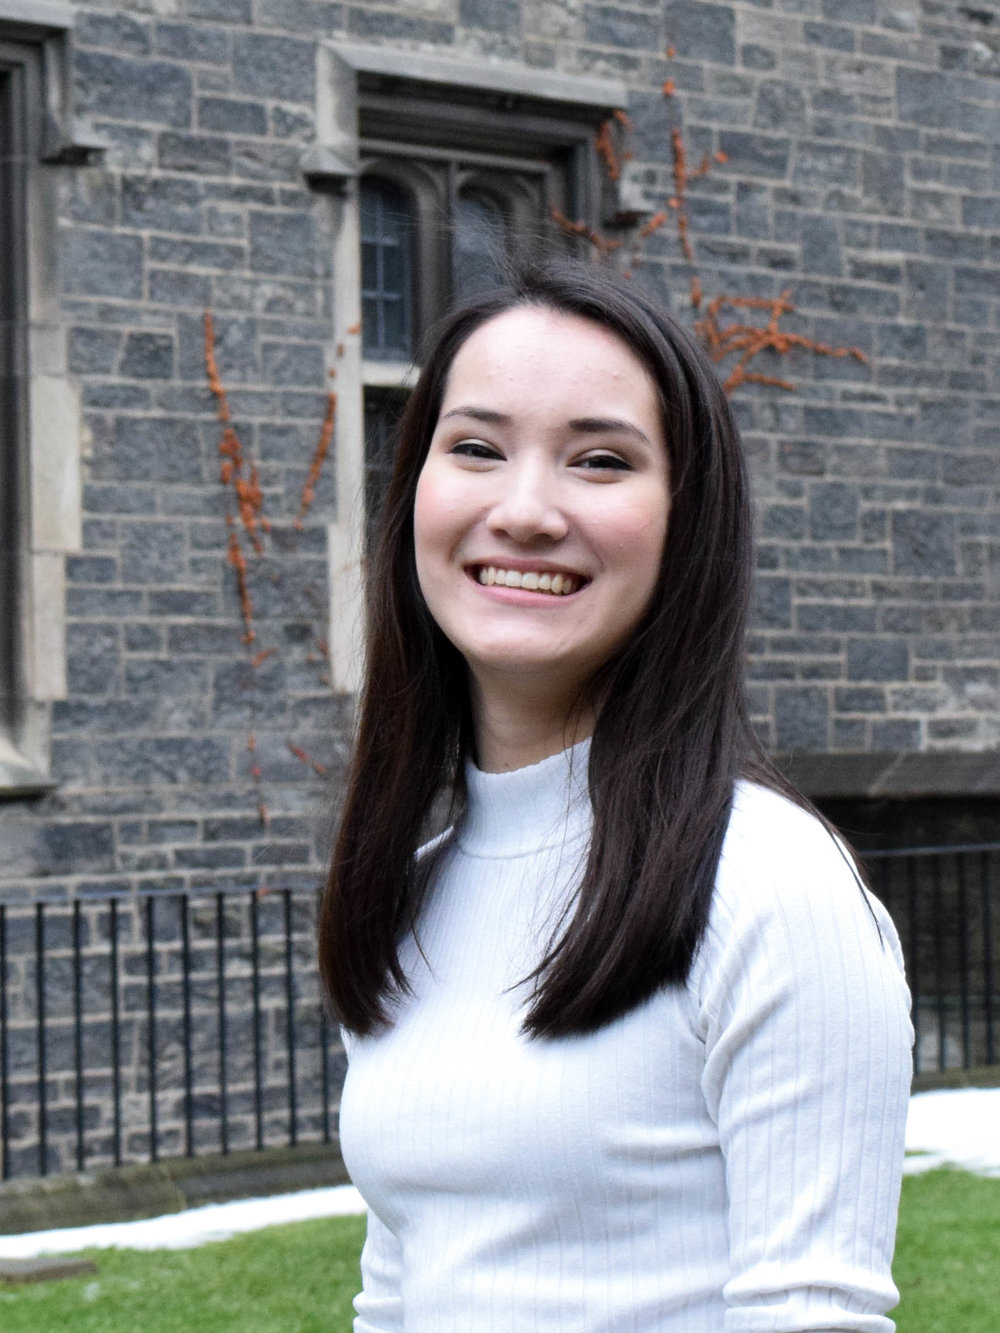 Kate Schneider is a first year student at Victoria College planning on majoring in Political Science. Her interests in politics tend towards Canadian politics, public policy, and political theory. In her spare time, Kate helps to run the Vic First Ministers Conference Simulation and is involved with several music activities, including the Hart House Orchestra and Vic Records. Kate is thrilled to be a first year representative on the APSS and looks forward to encouraging more first years to become involved with the many opportunities on campus.